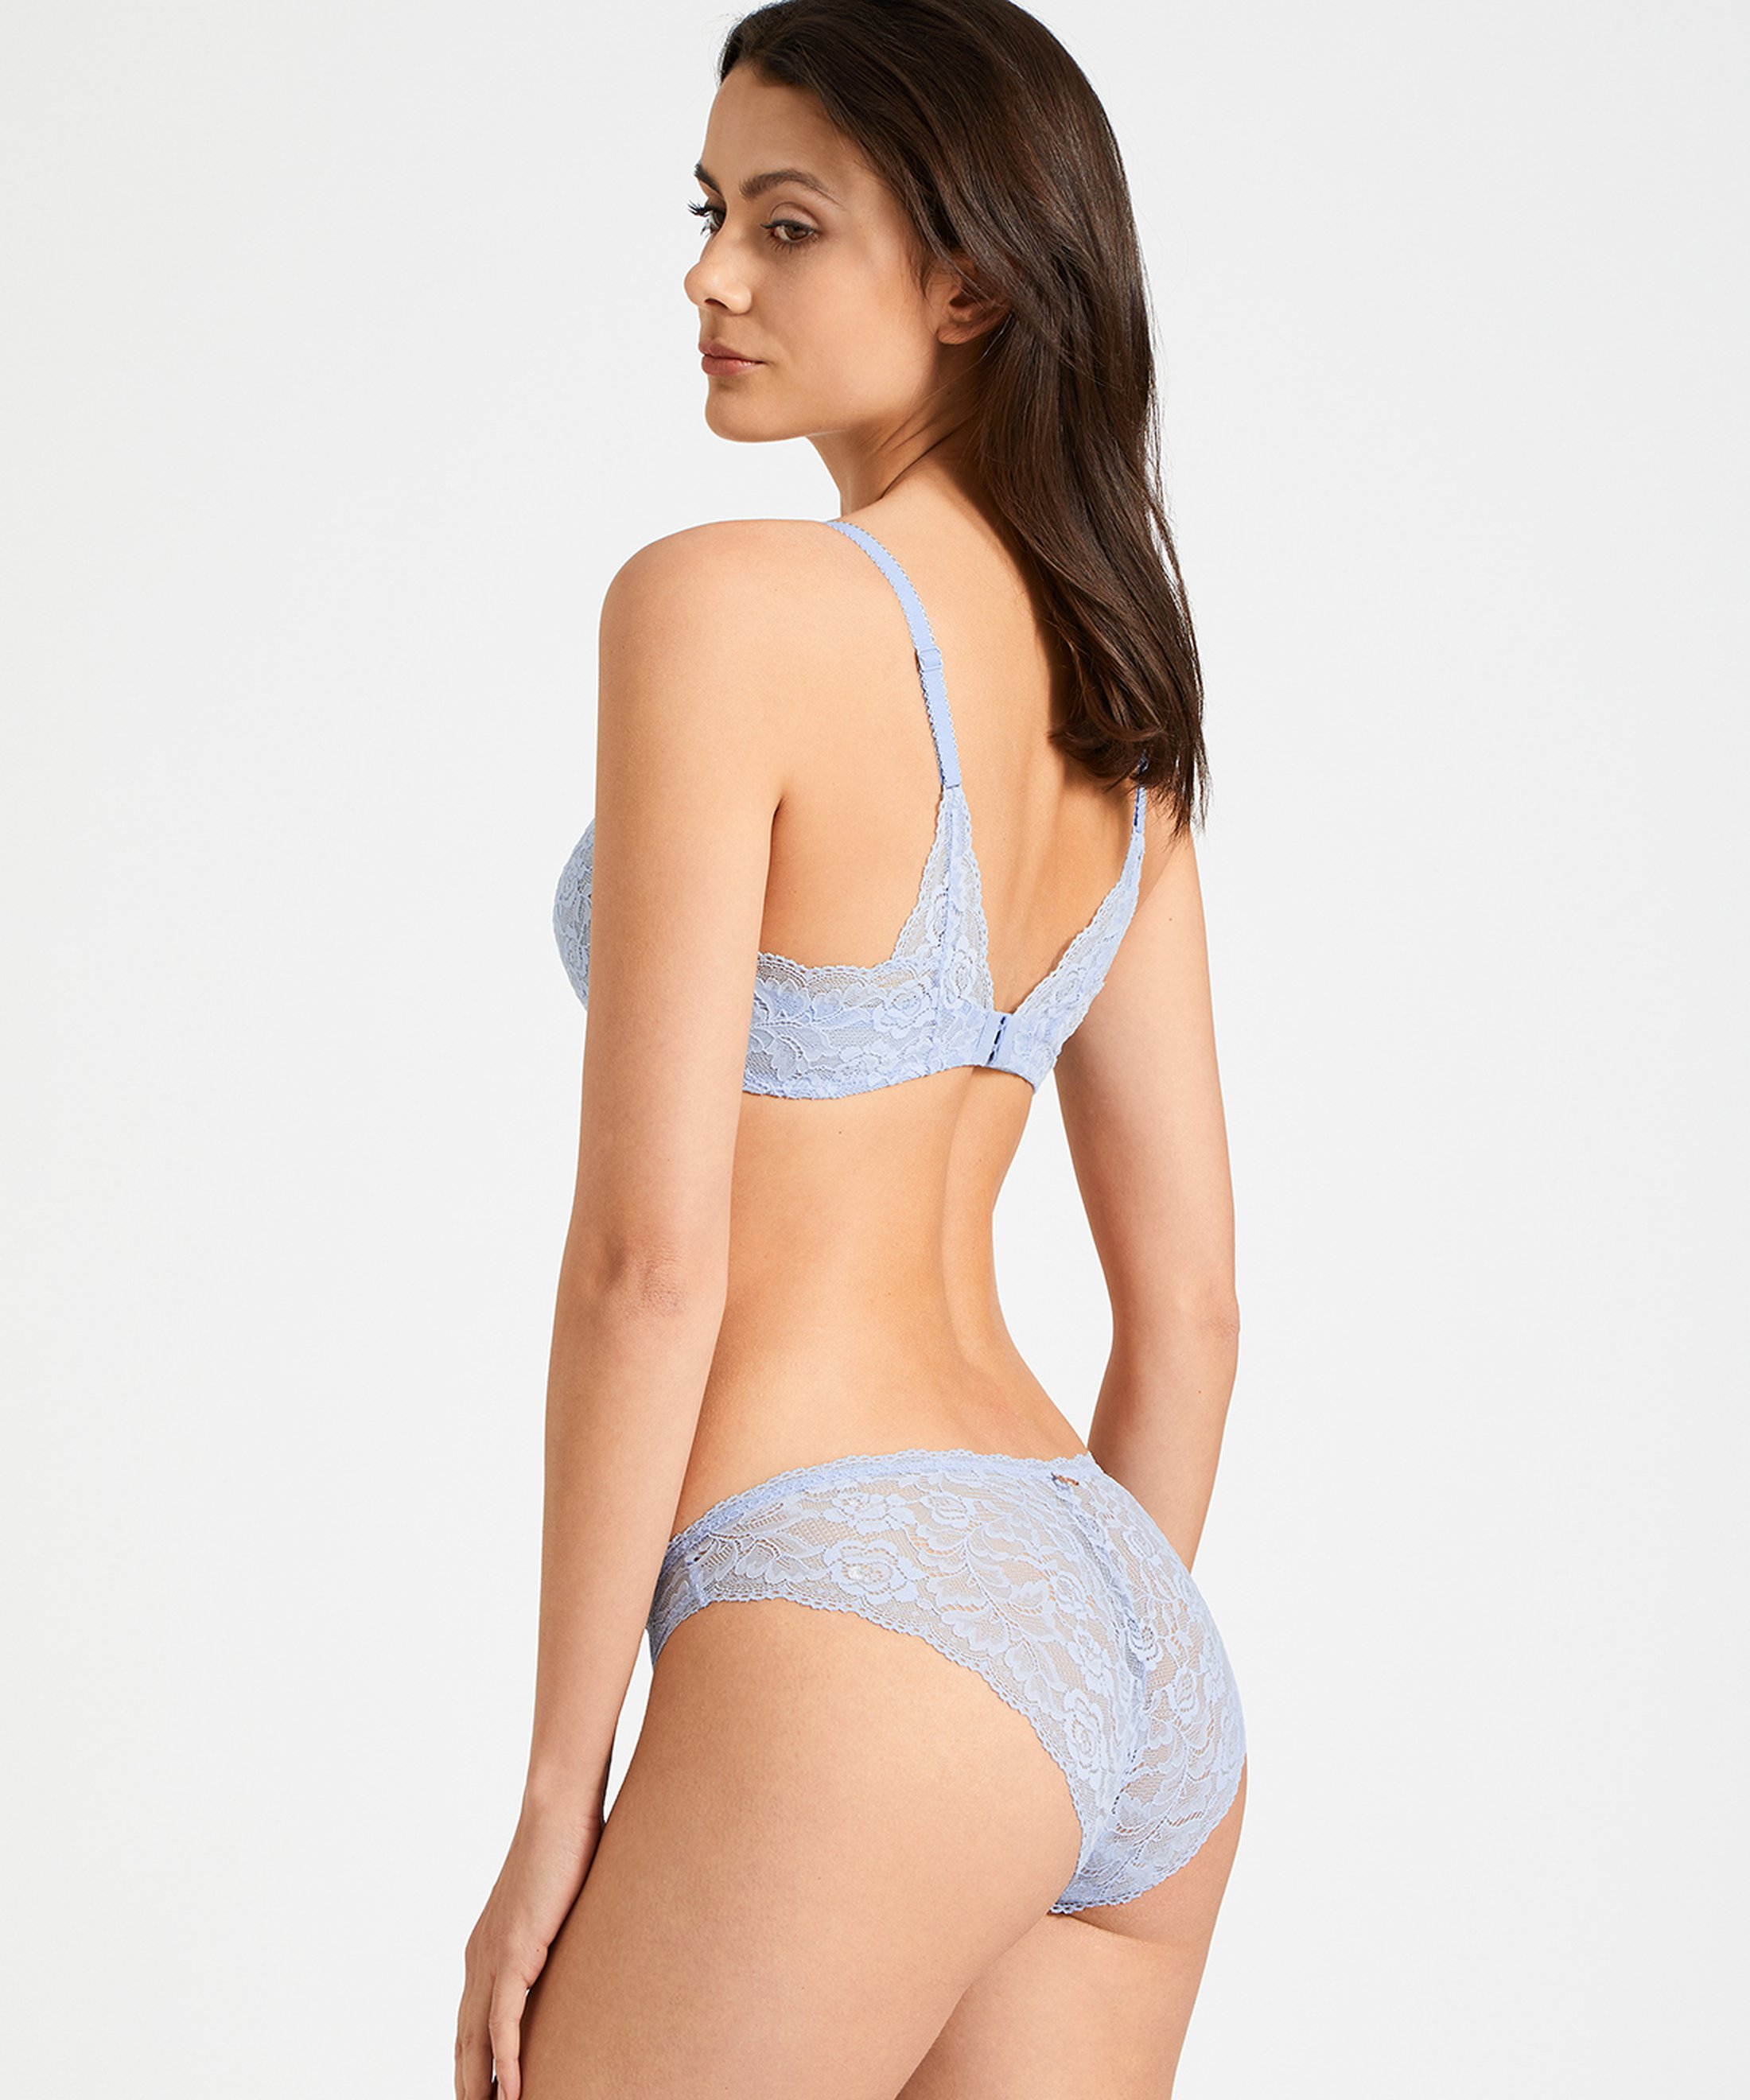 ROSESSENCE Culotte Italienne Powder Blue | Aubade